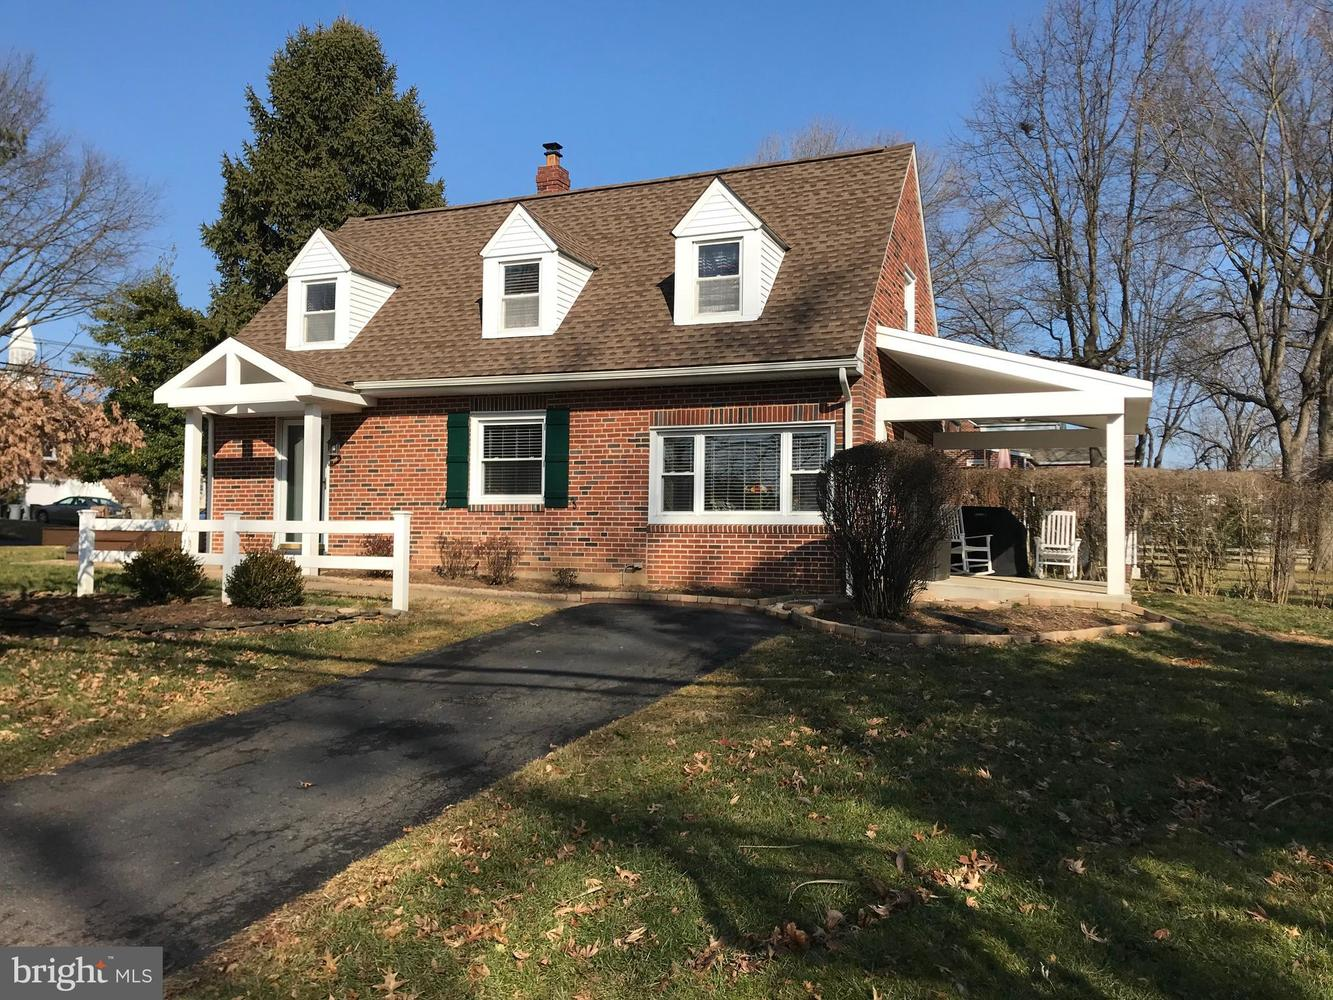 563 Duell Street Huntingdon Valley, PA 19006